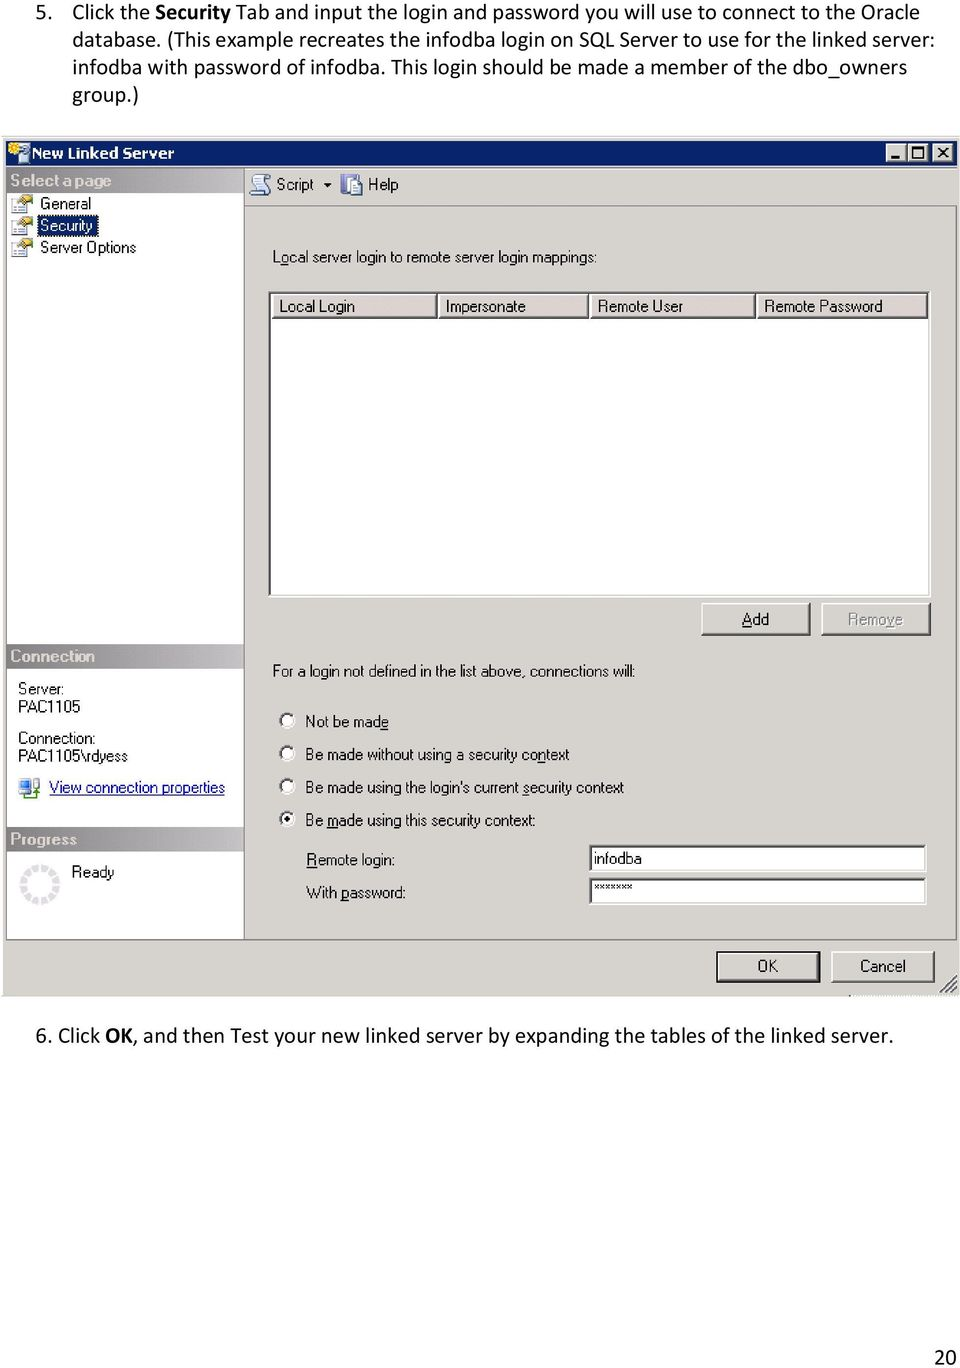 (This example recreates the infodba login on SQL Server to use for the linked server: infodba